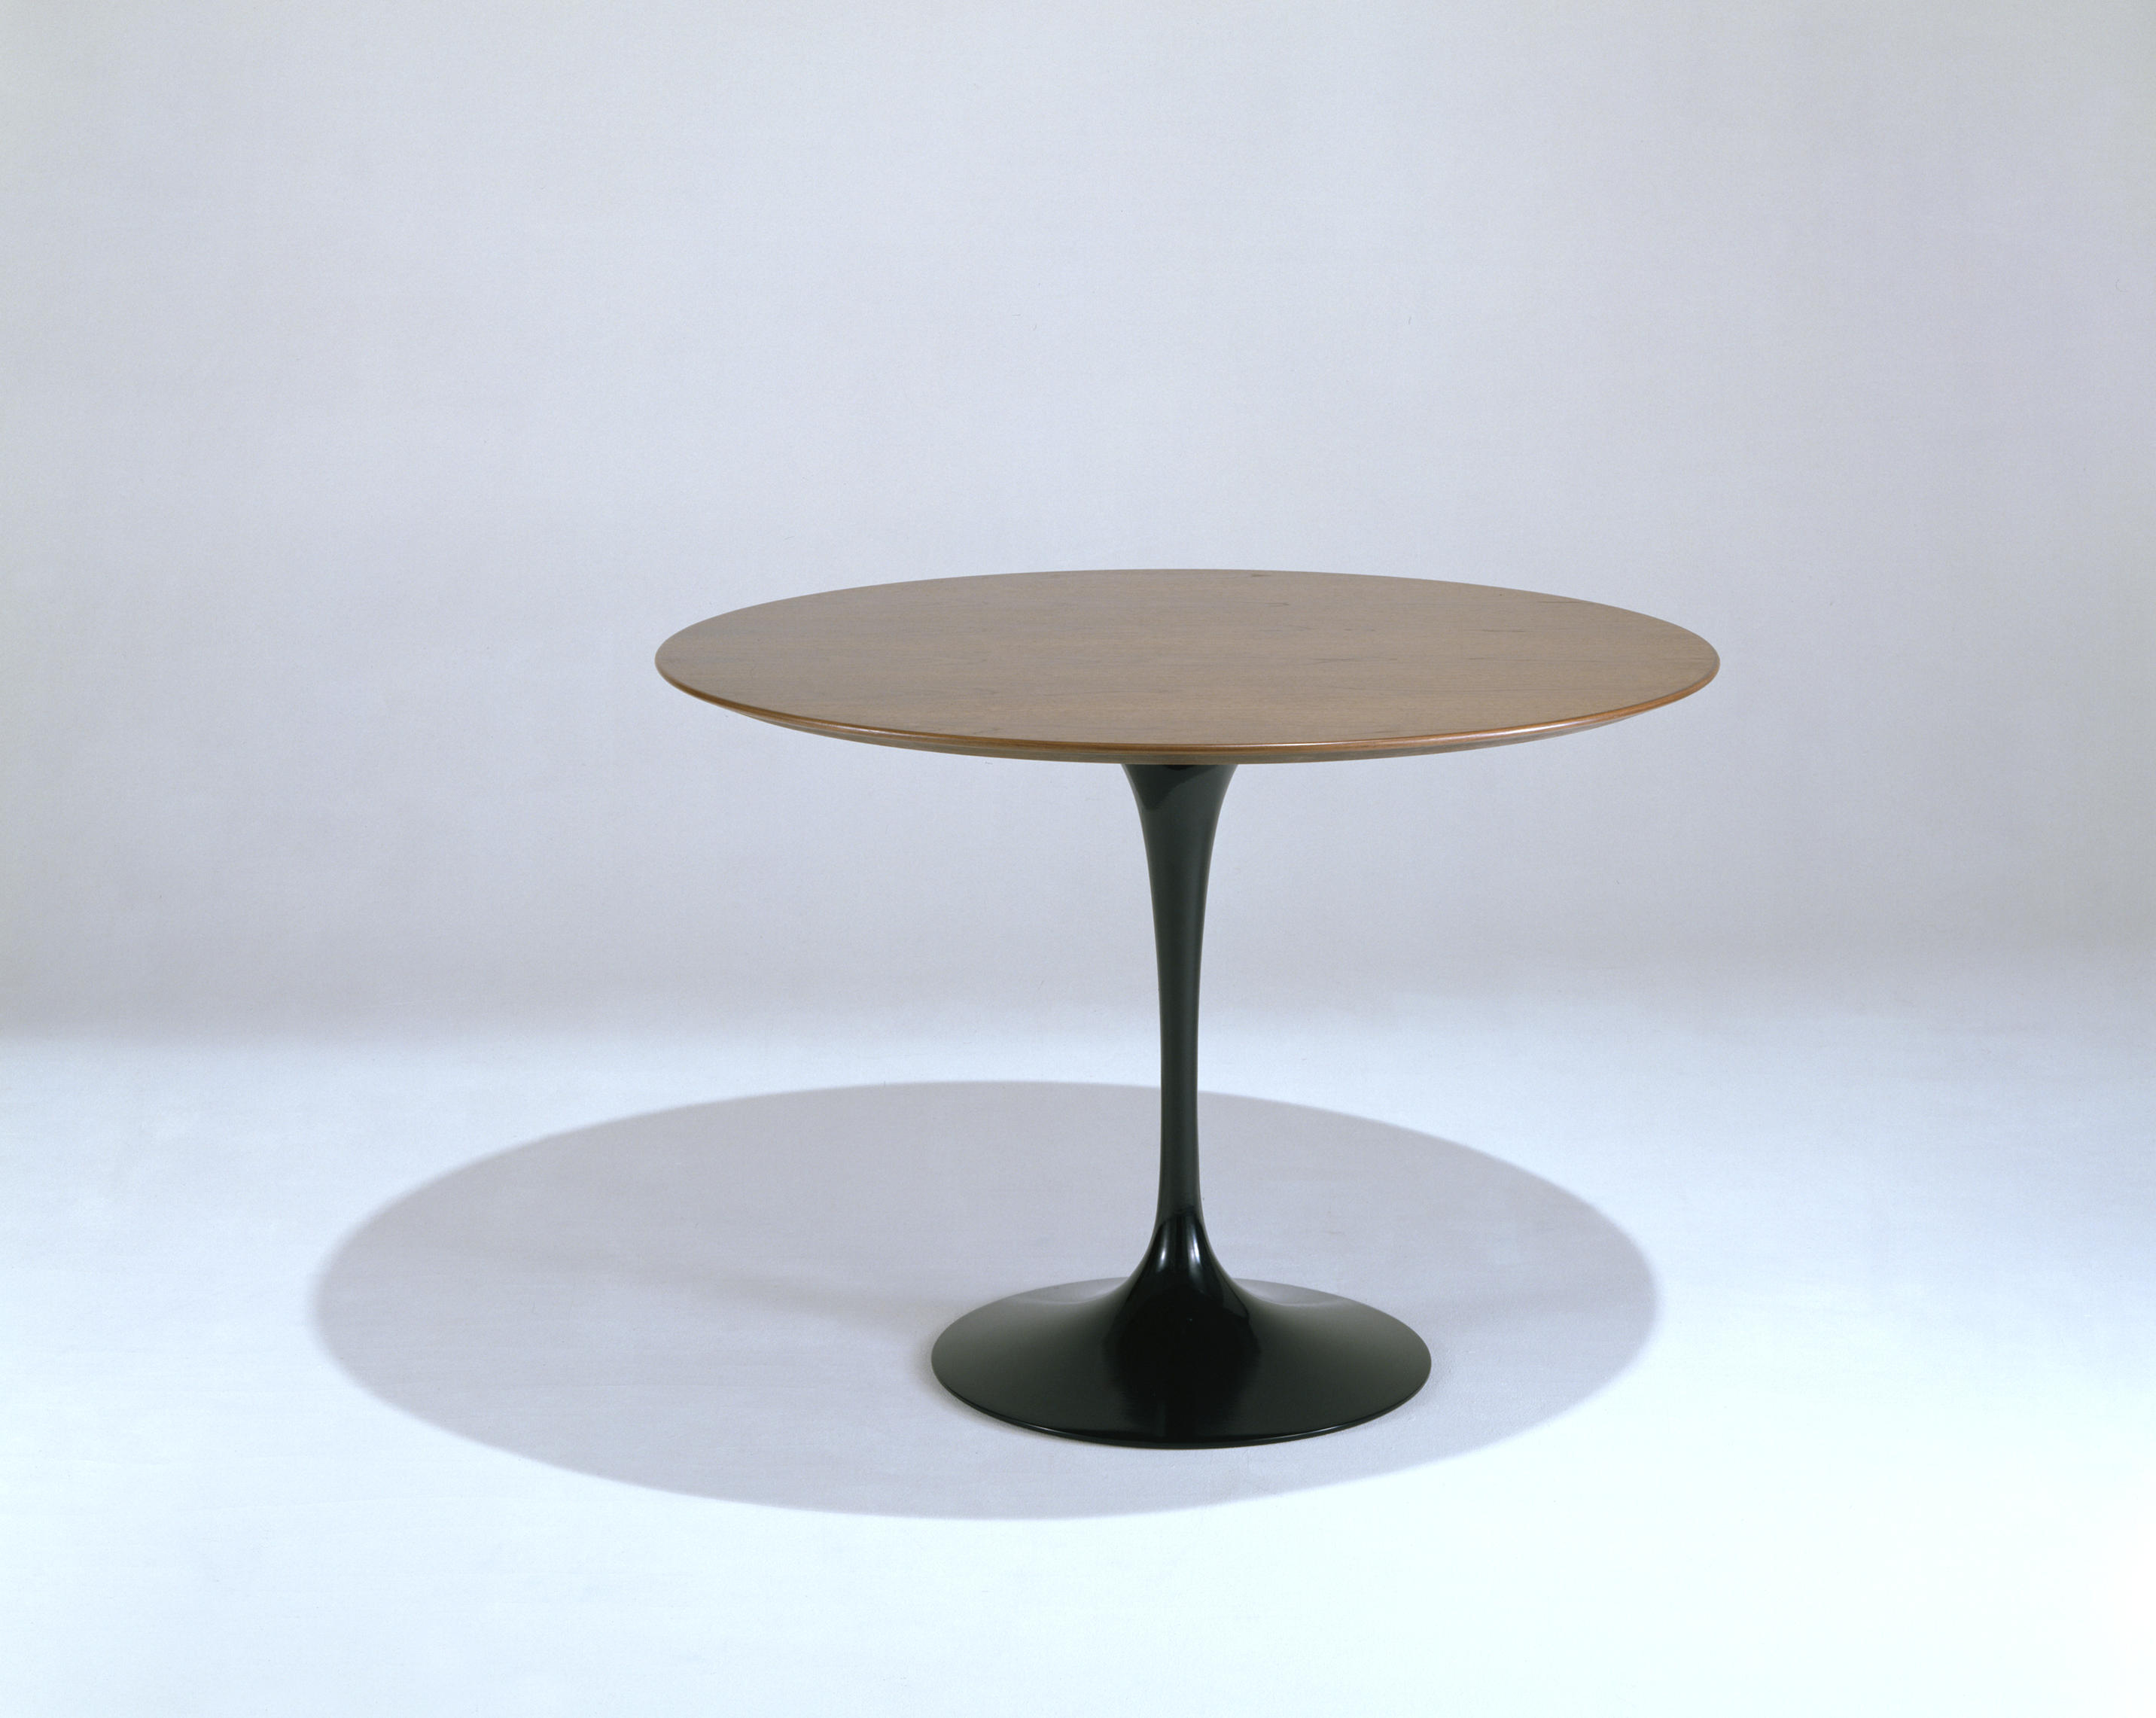 Saarinen tulip dining table dining tables by knoll for Tulip dining table